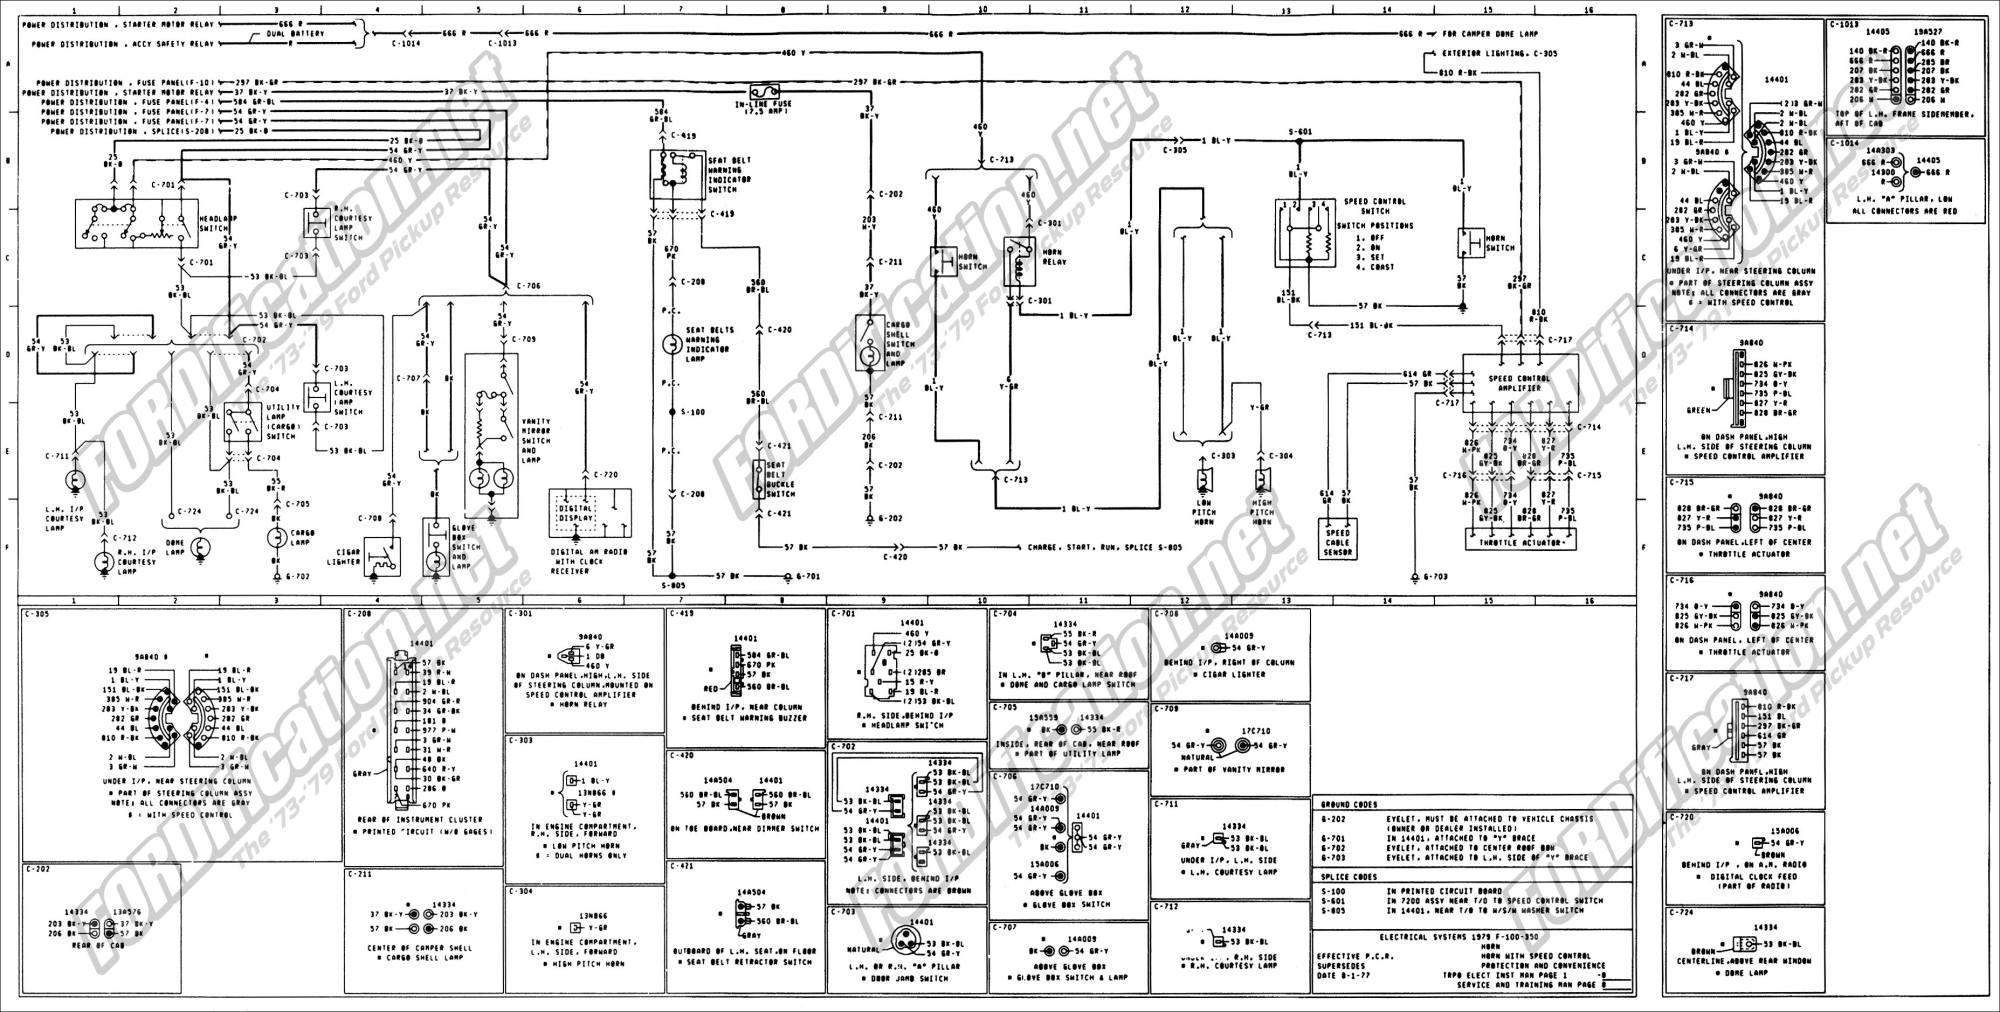 hight resolution of 1974 ford wiring diagram detailed schematics diagram rh lelandlutheran com 2006 f250 fuse box diagram 2003